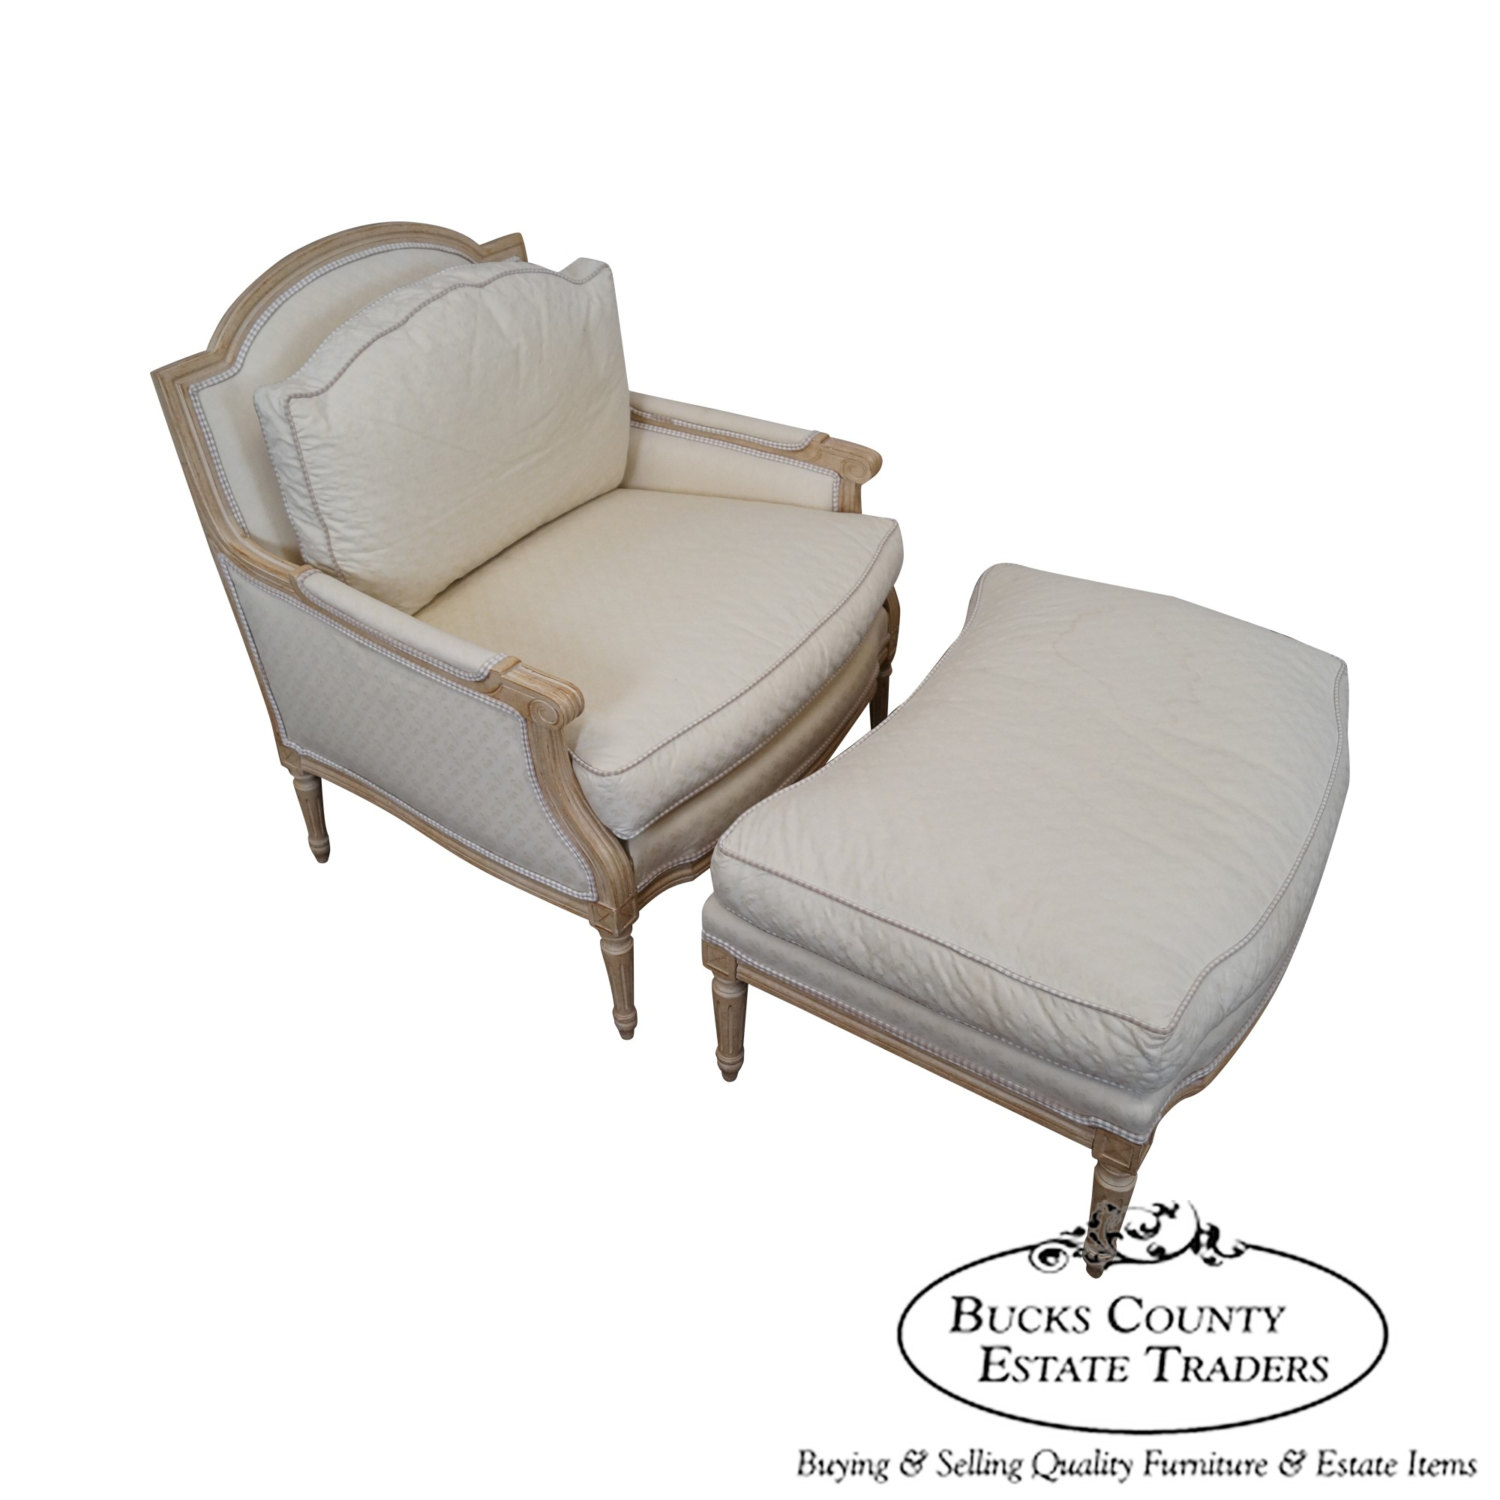 Heirloom Furniture French Louis XV Style Bergere Chaise Lounge Chair U0026  Ottoman